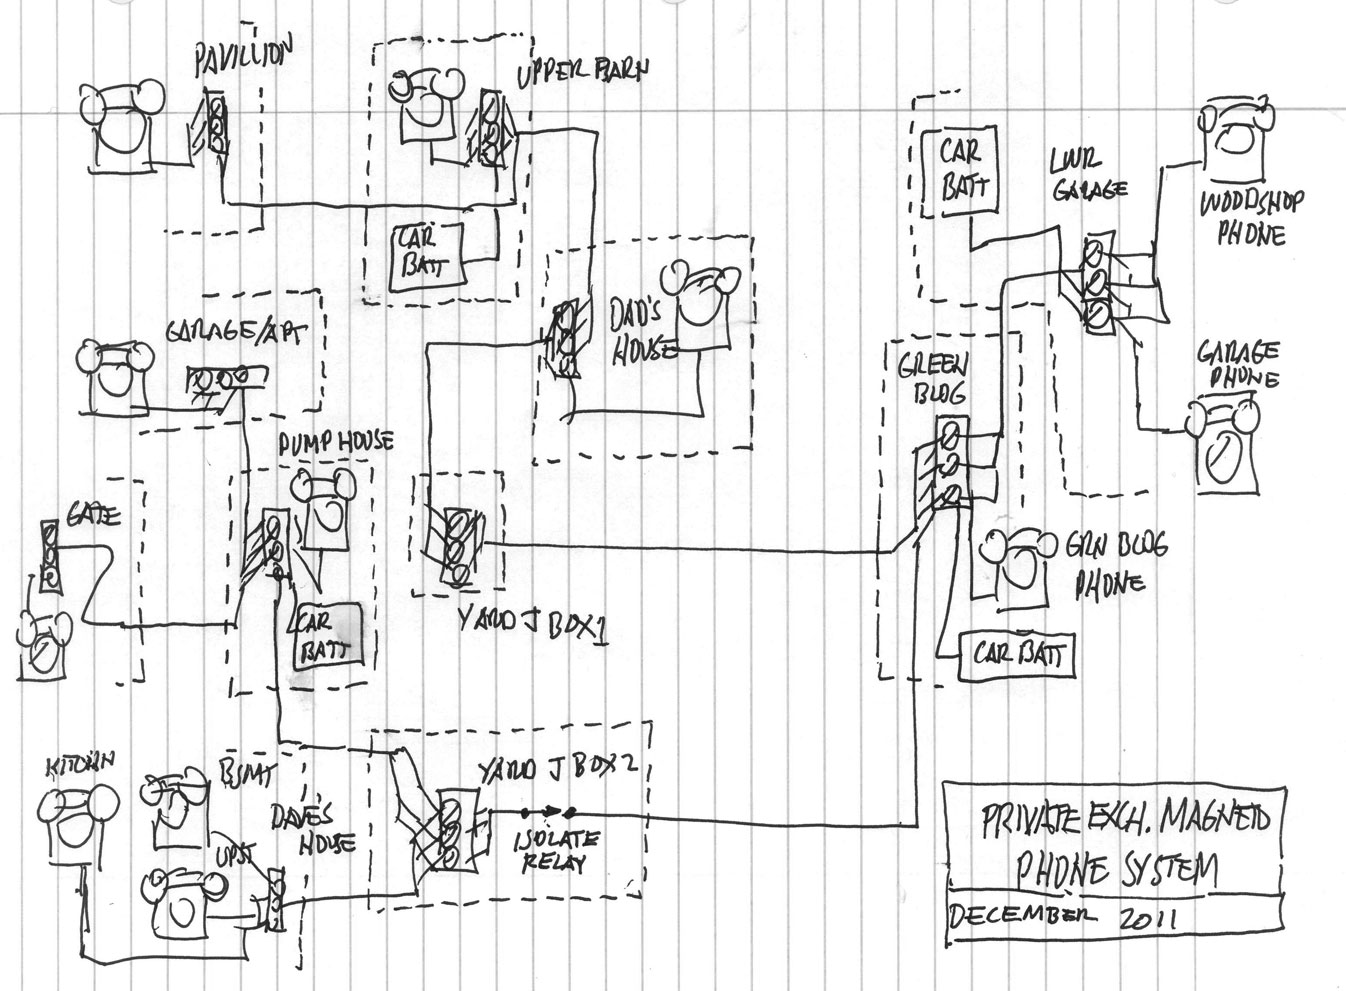 phonesysdiag leich phone bell 901 wiring diagram at et-consult.org